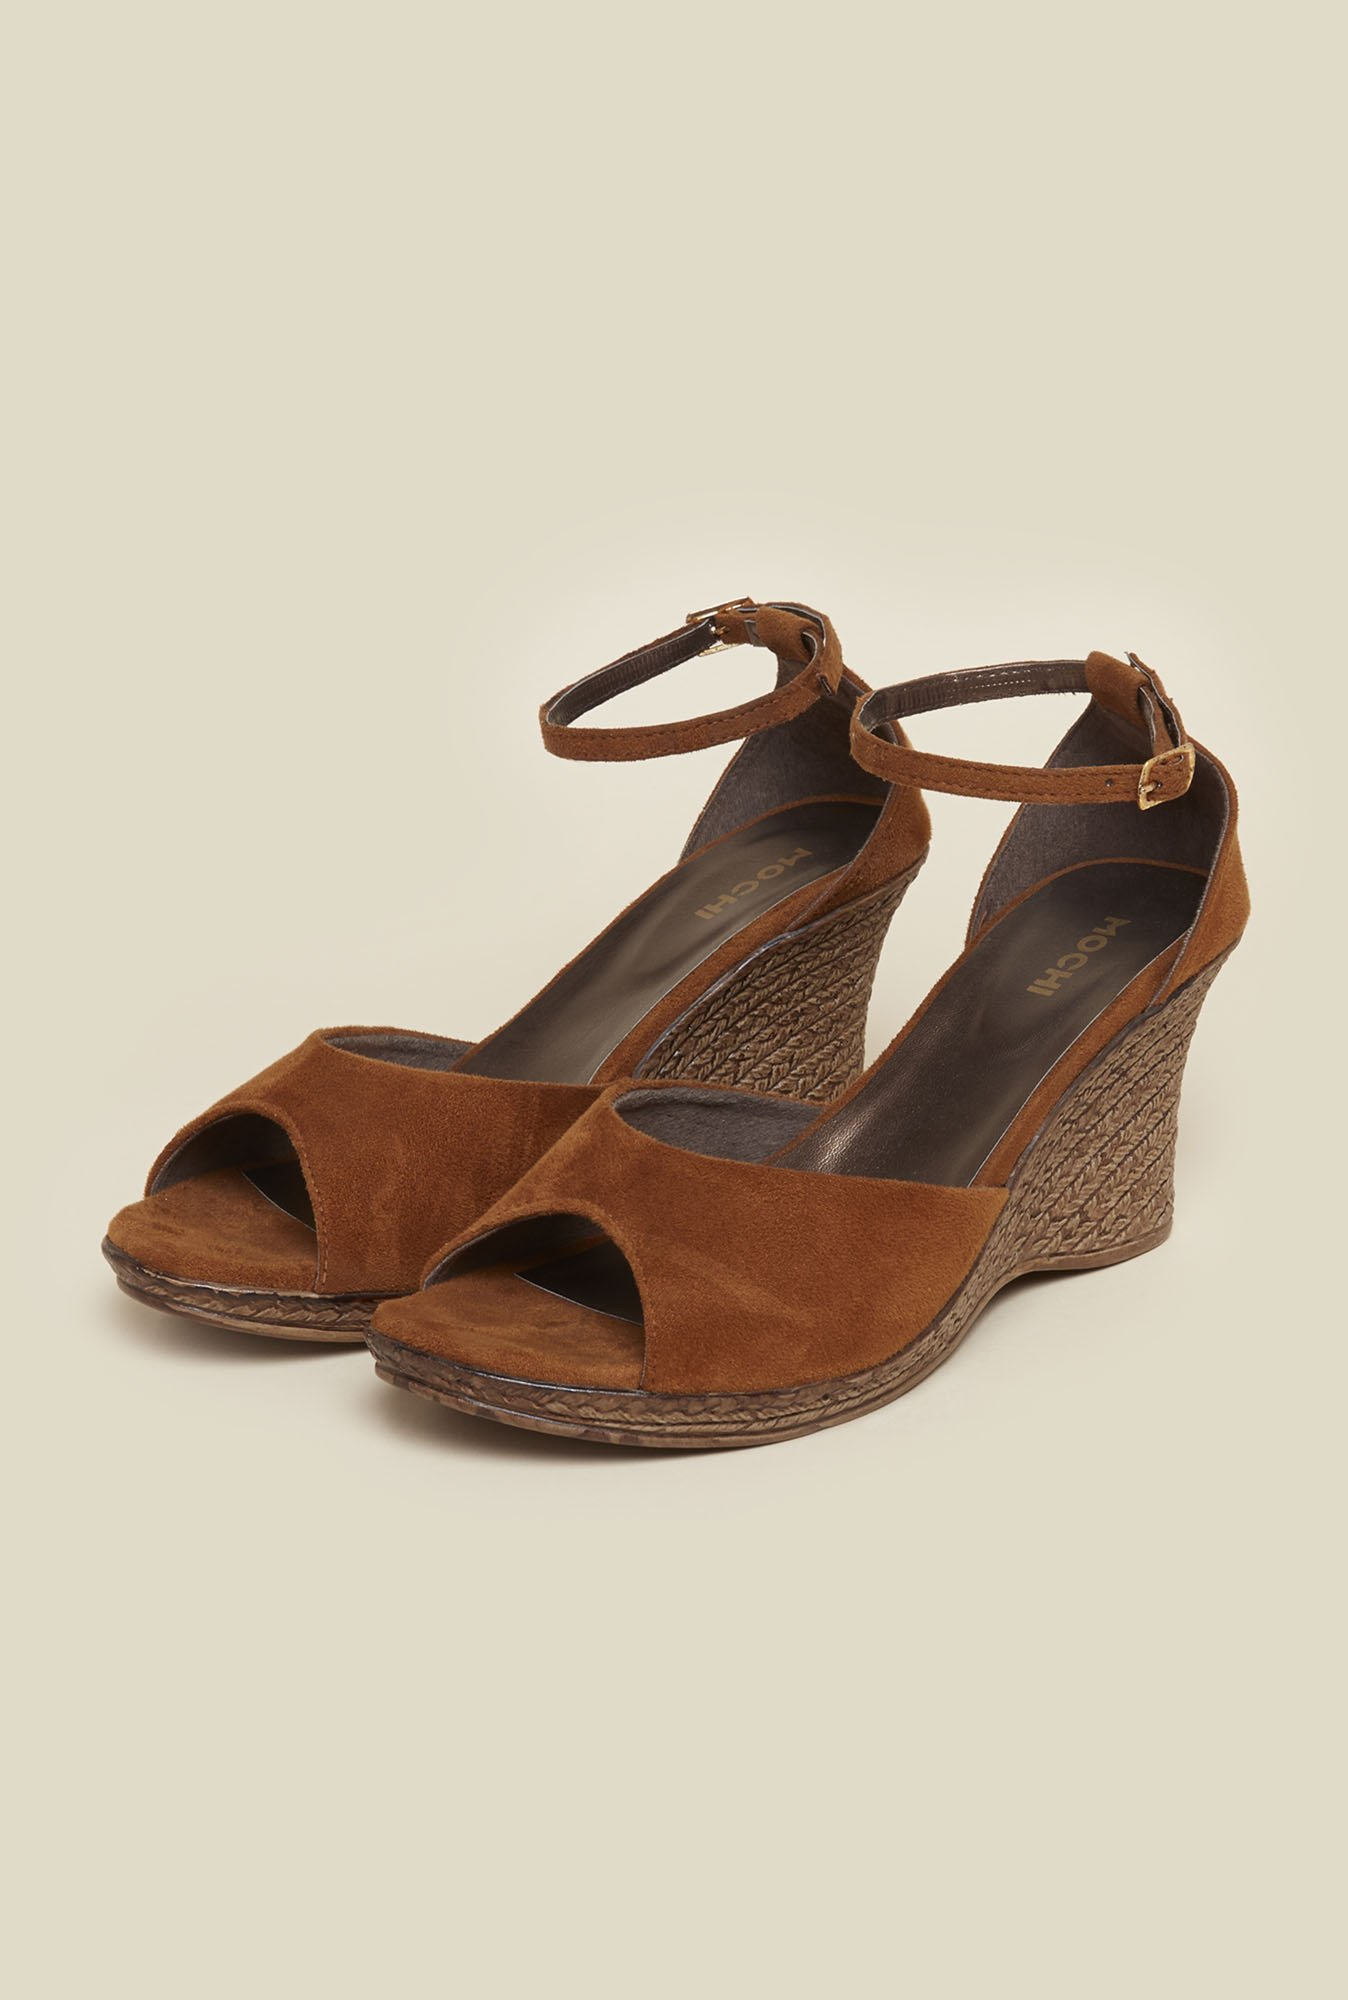 Mochi Tan Ankle Strap Wedges